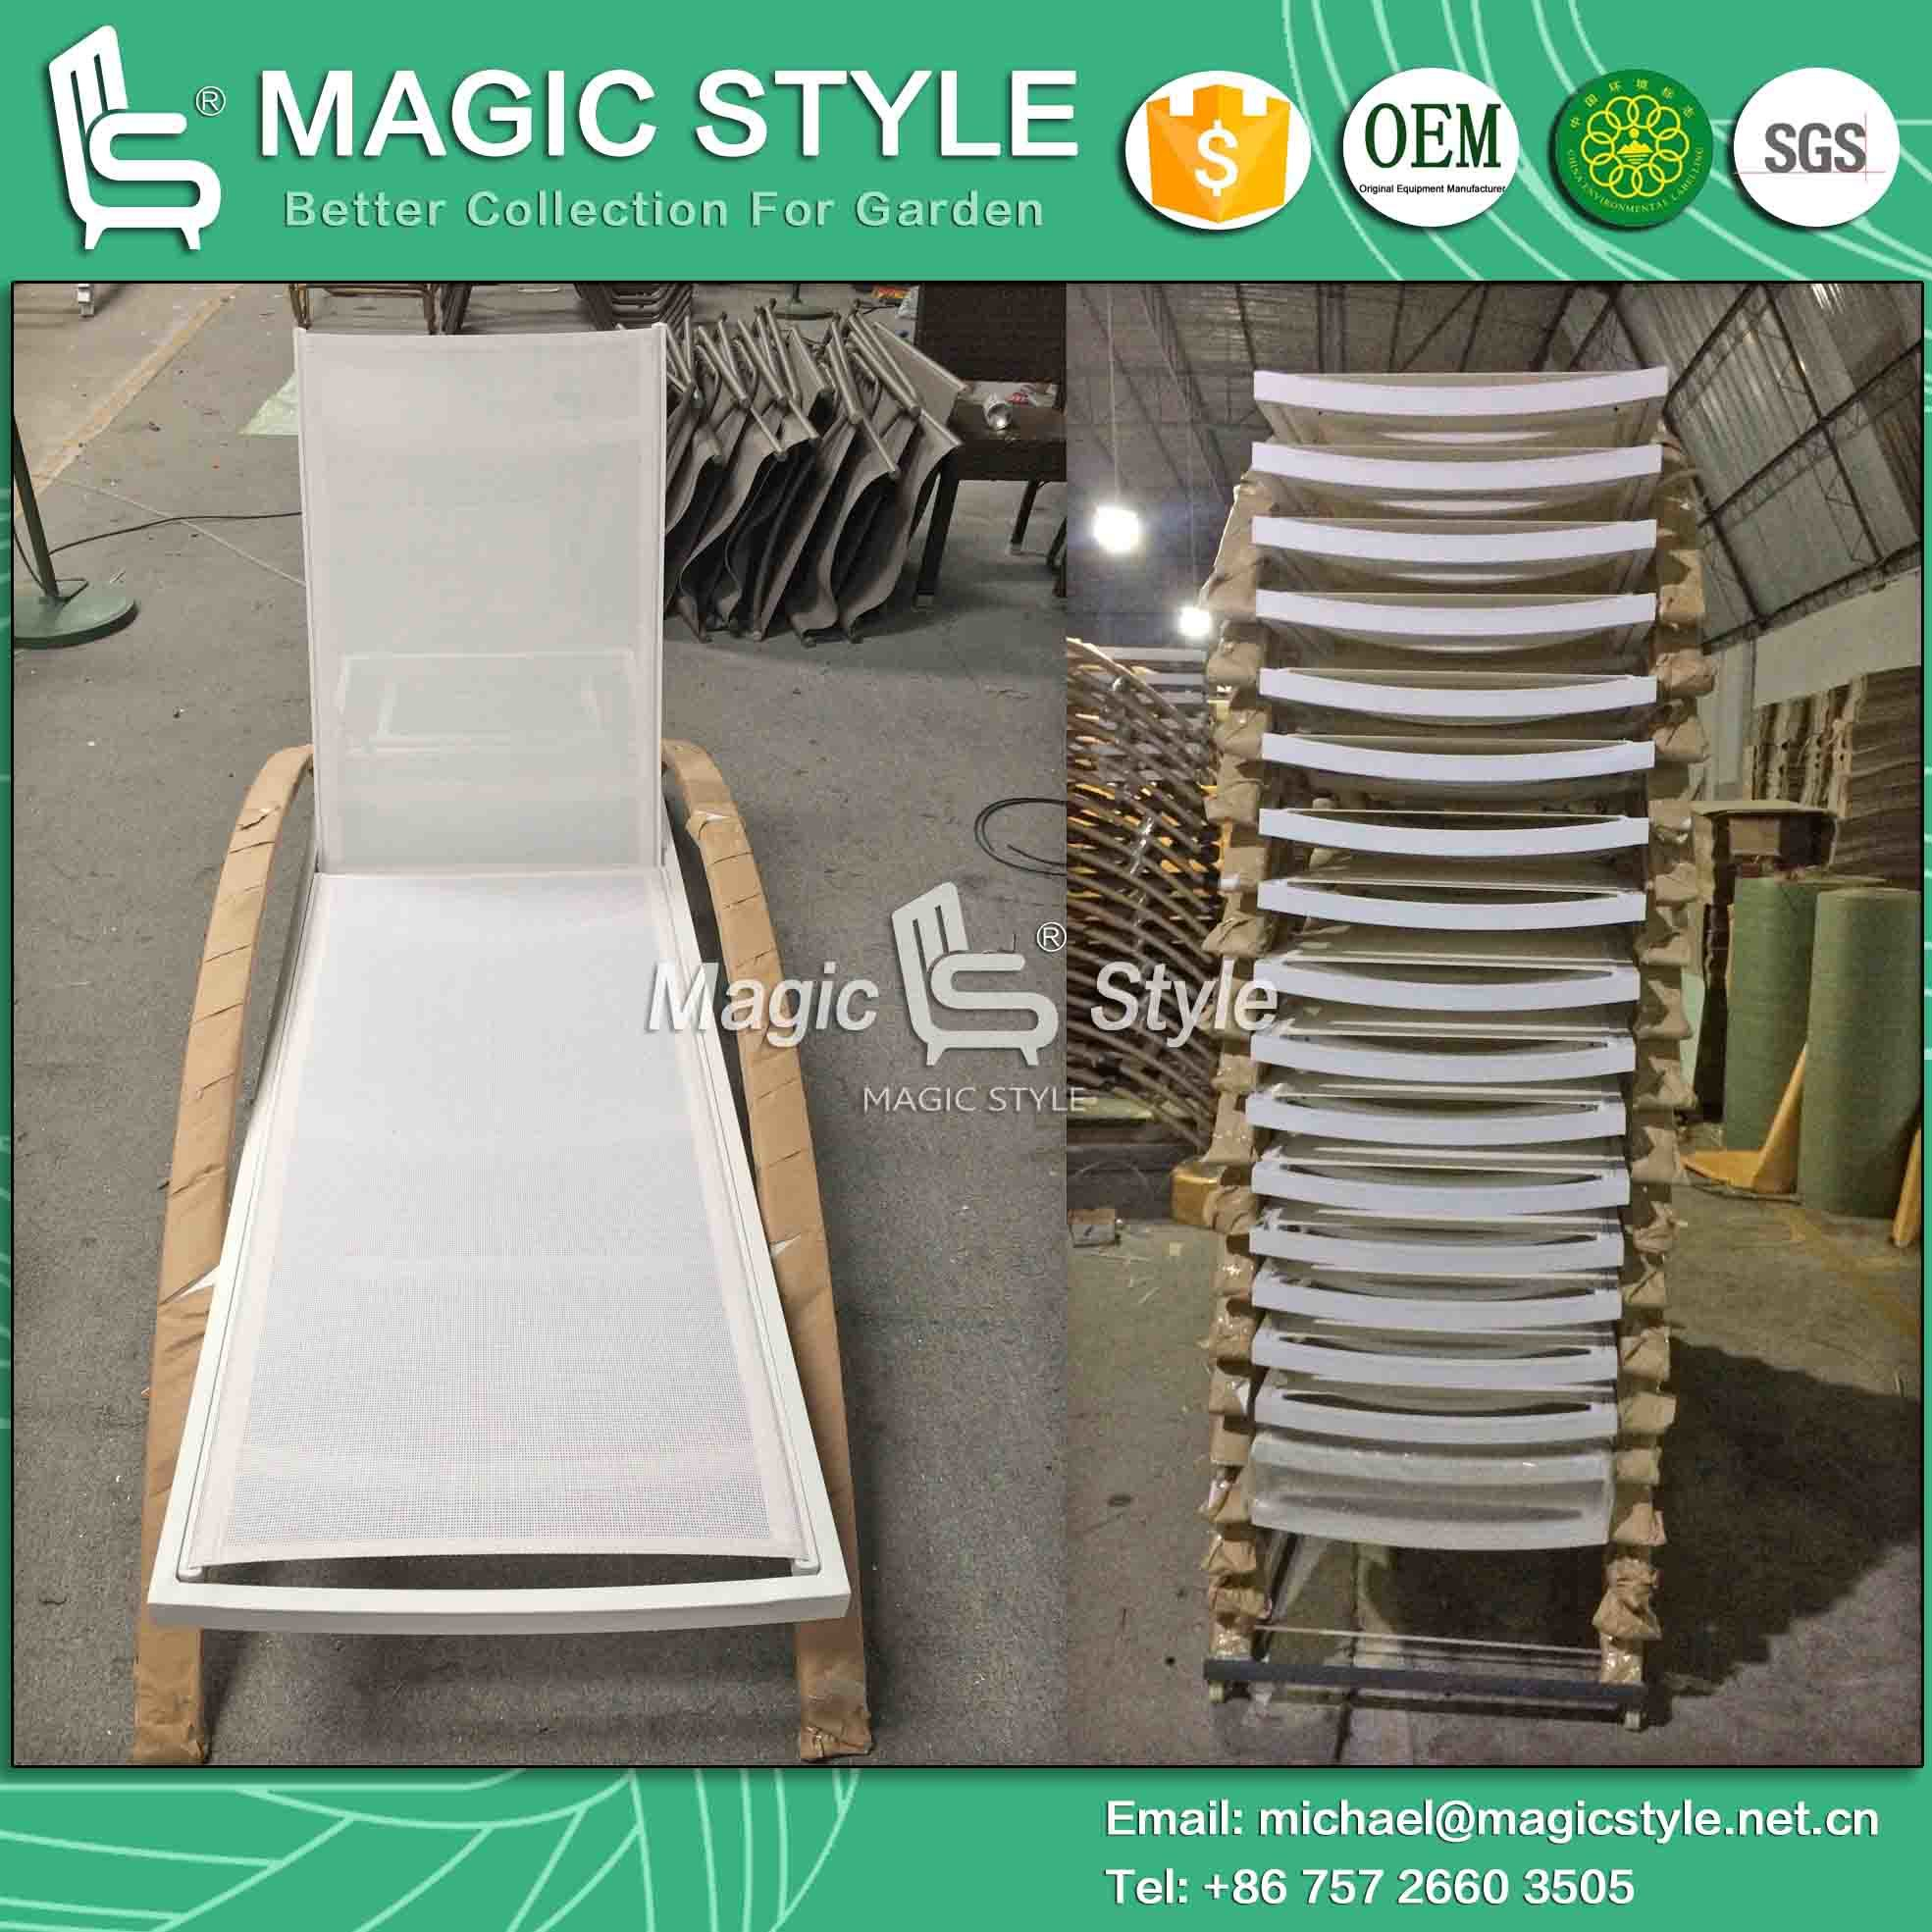 Sling Lounge Textile Sunbed Garden Sunlounger Sling Sunbed Outdoor Sun Bed Garden Daybed (Magic Style)